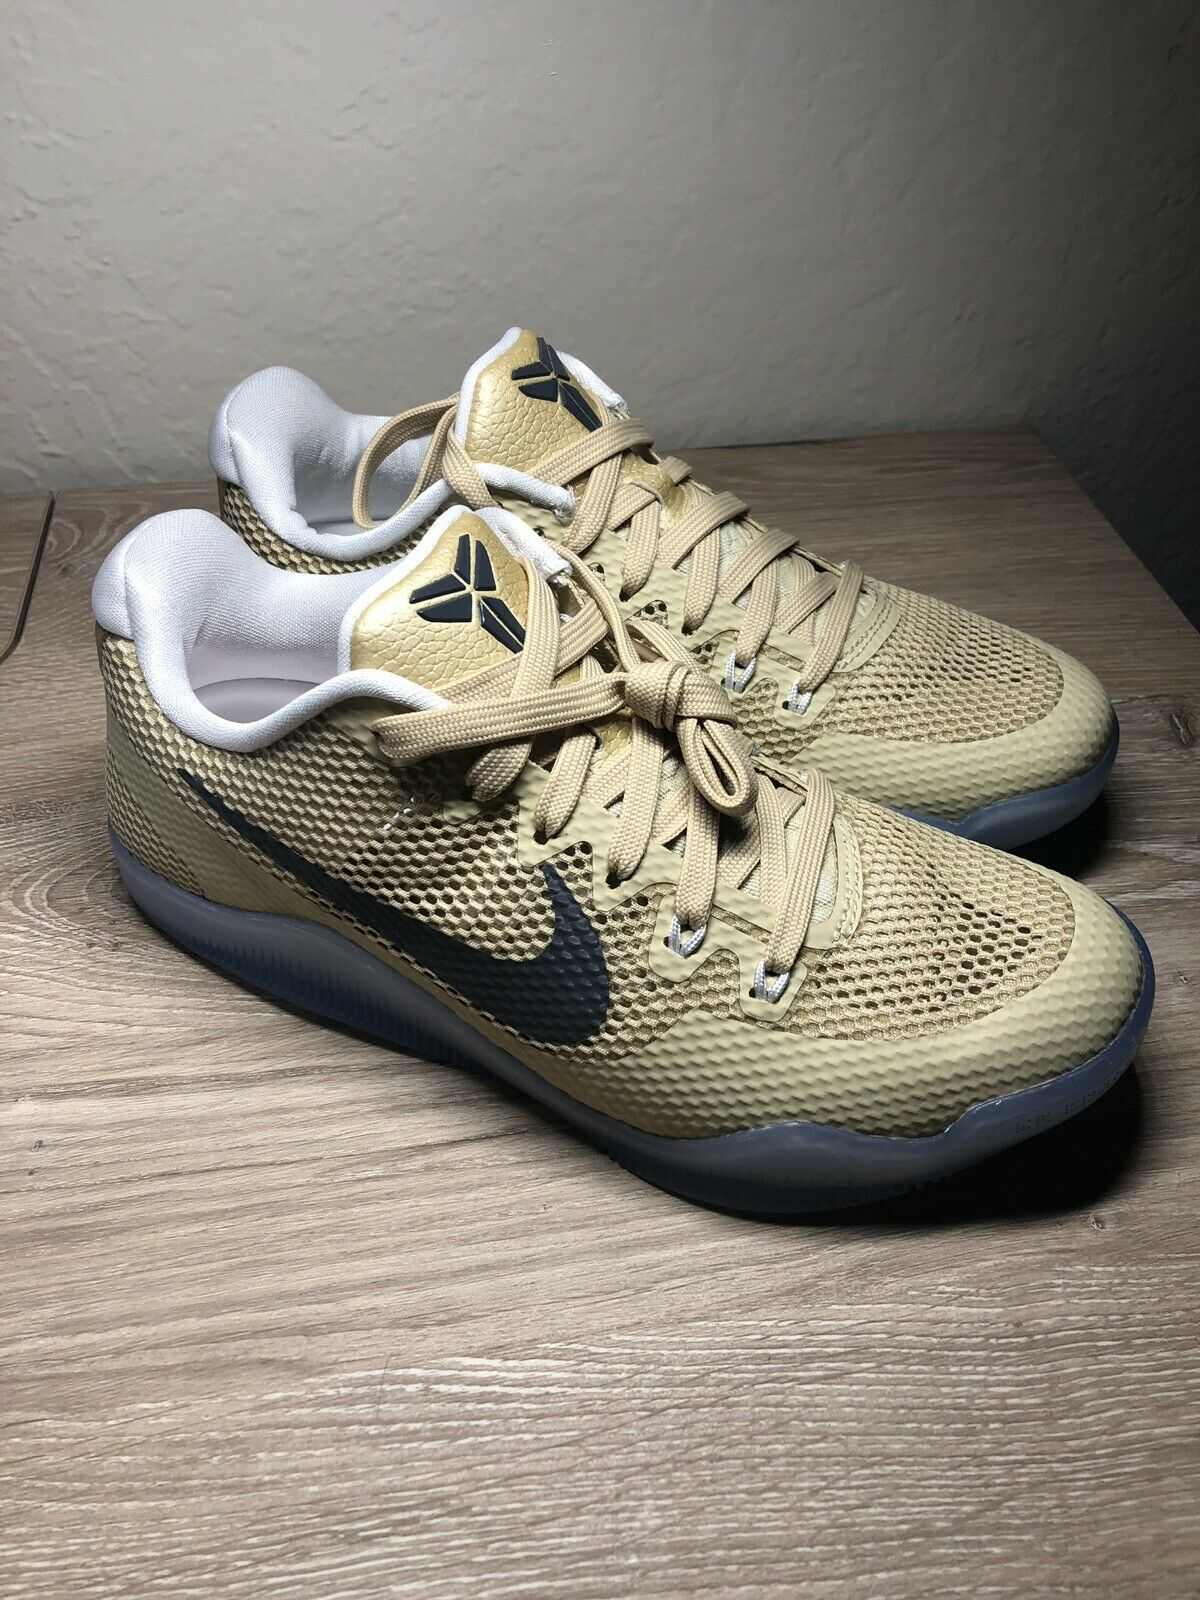 Nike Kobe 11 TB Promo Team gold Basketball shoes Men's Sz 5.5 856485-701 Frosted